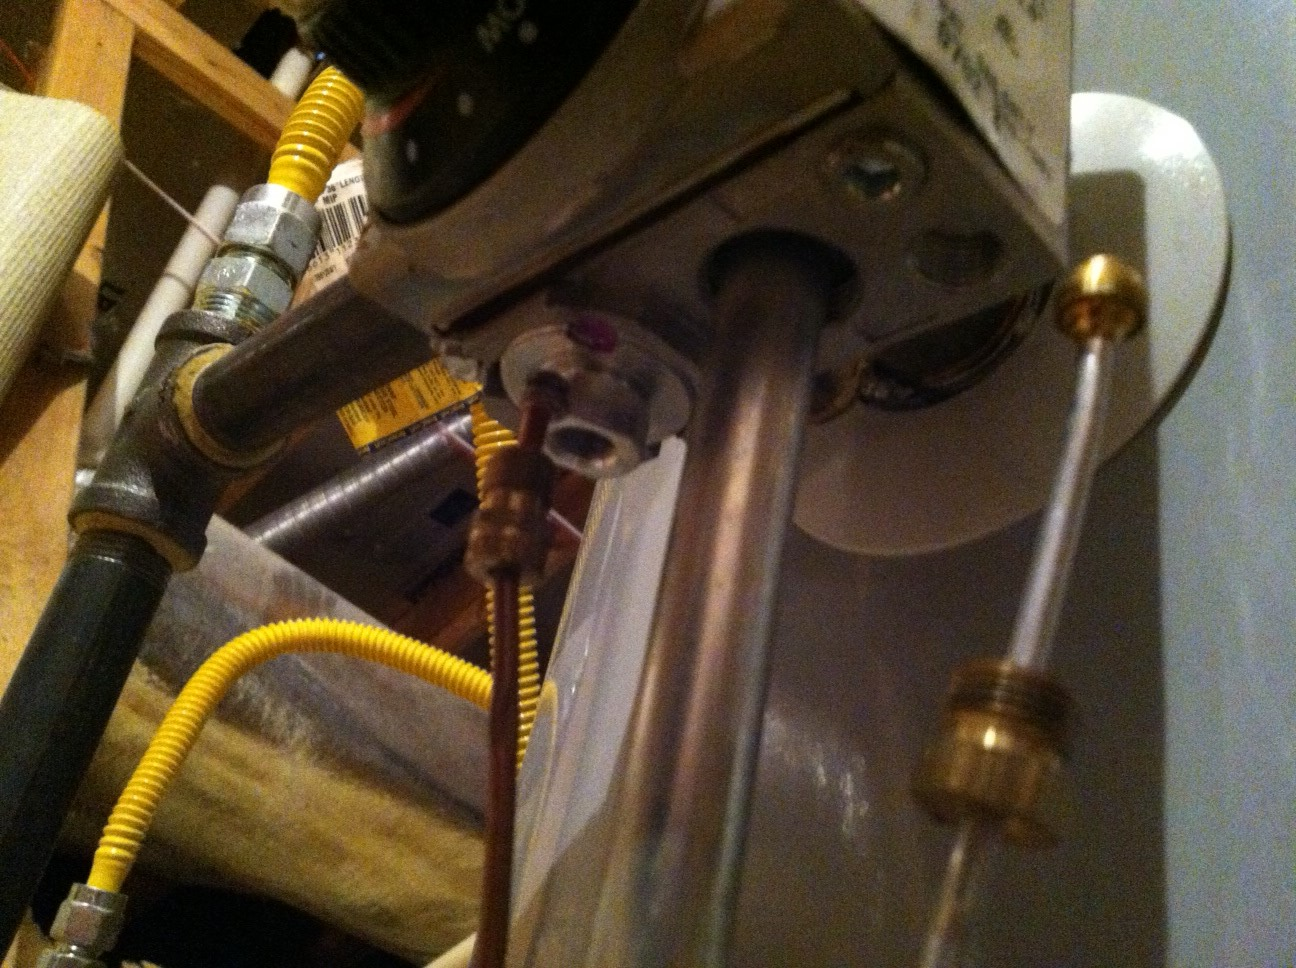 how to fix pilot light on duct heater